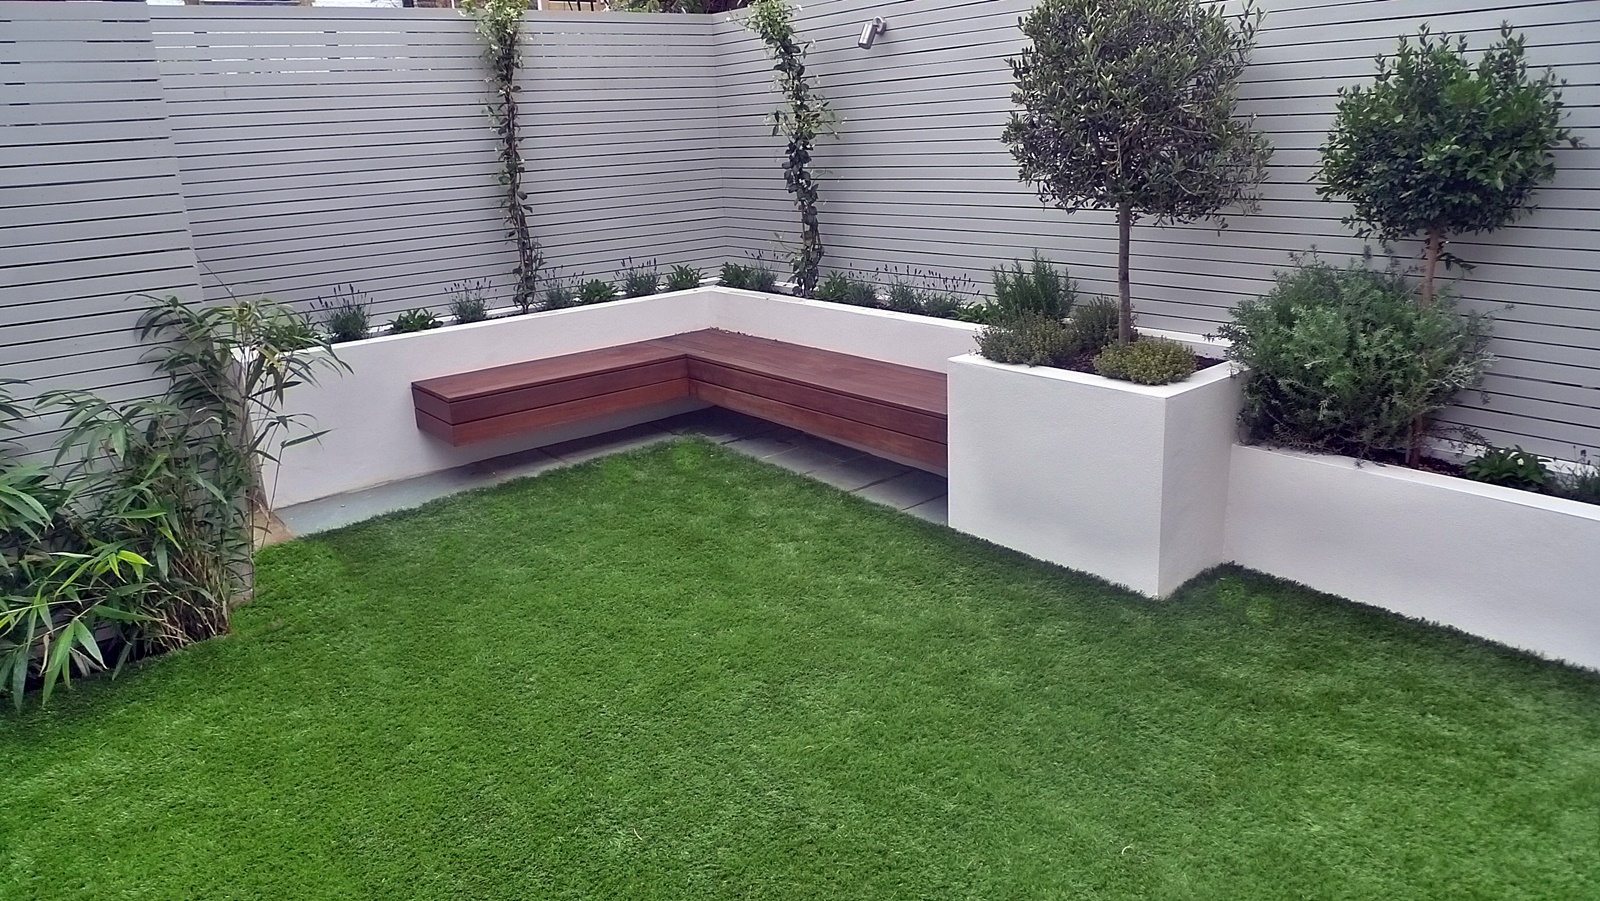 Artificial grass easi grass grey painted fences modern garden design ...